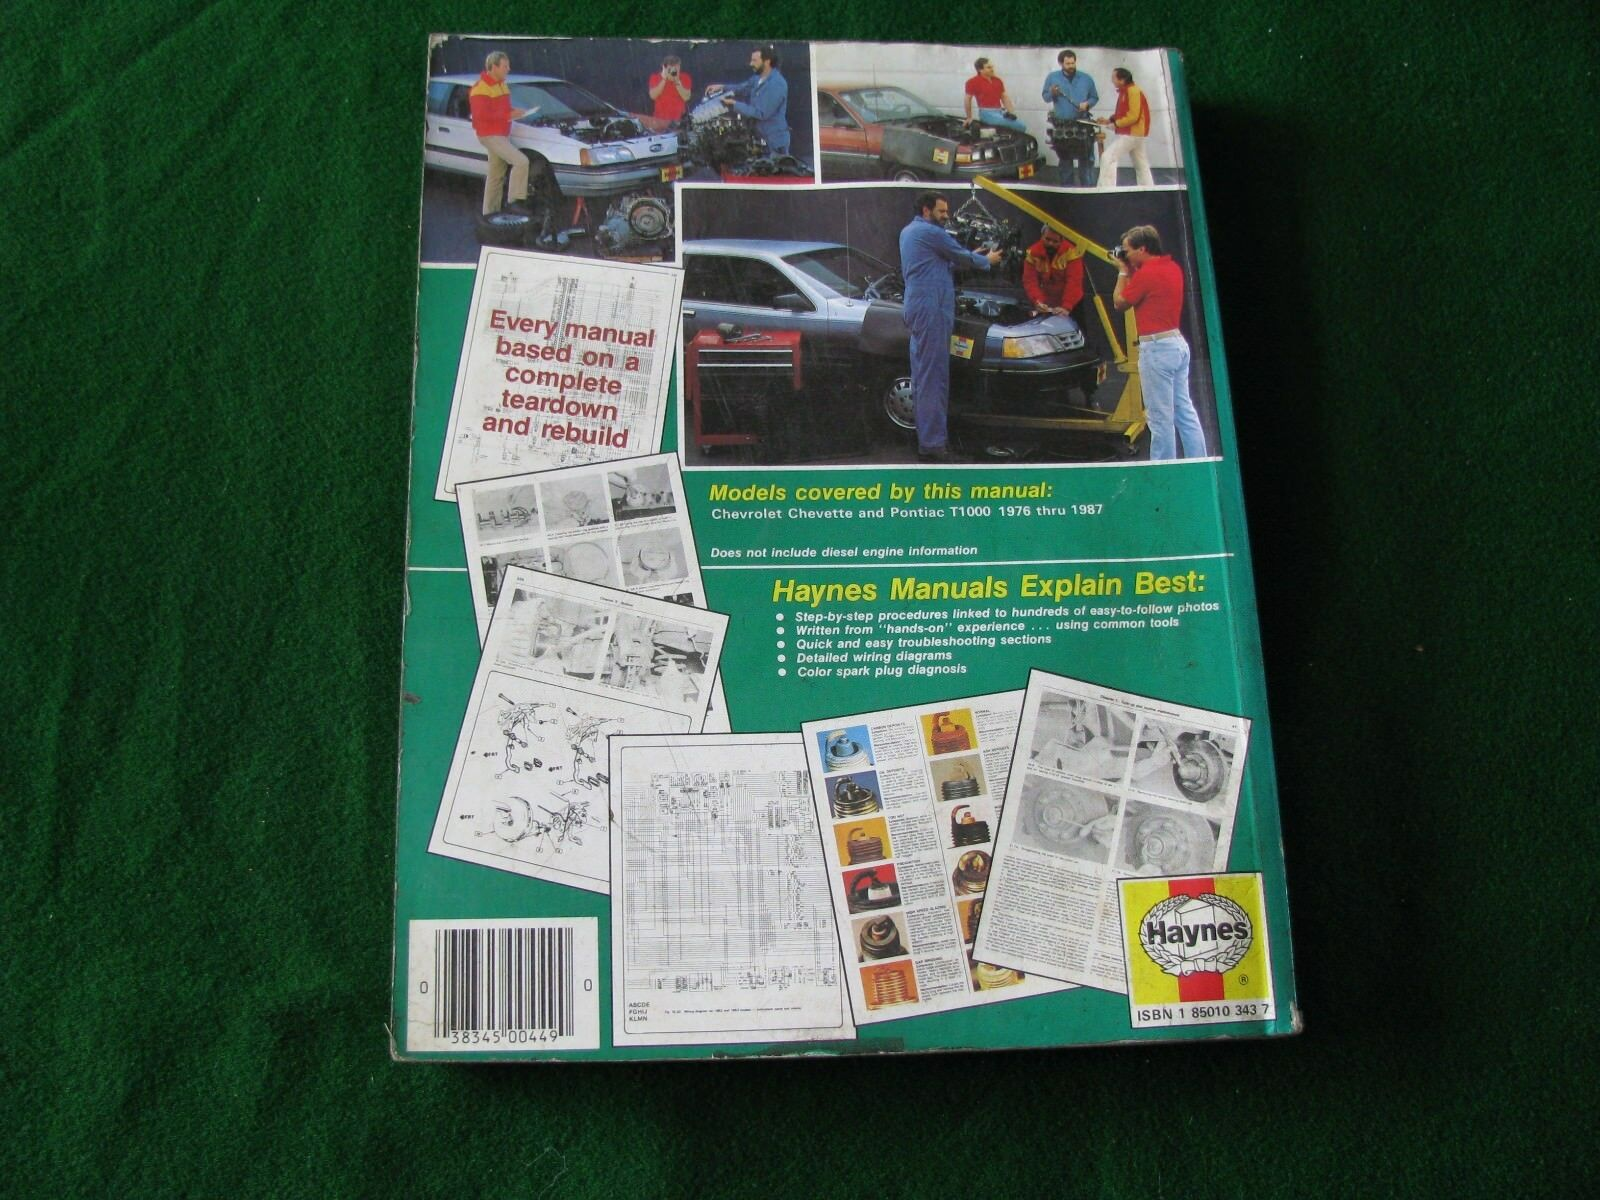 hight resolution of haynes chevrolet chevette pontiac t1000 owners workshop manual 1976 to 1987 ebay